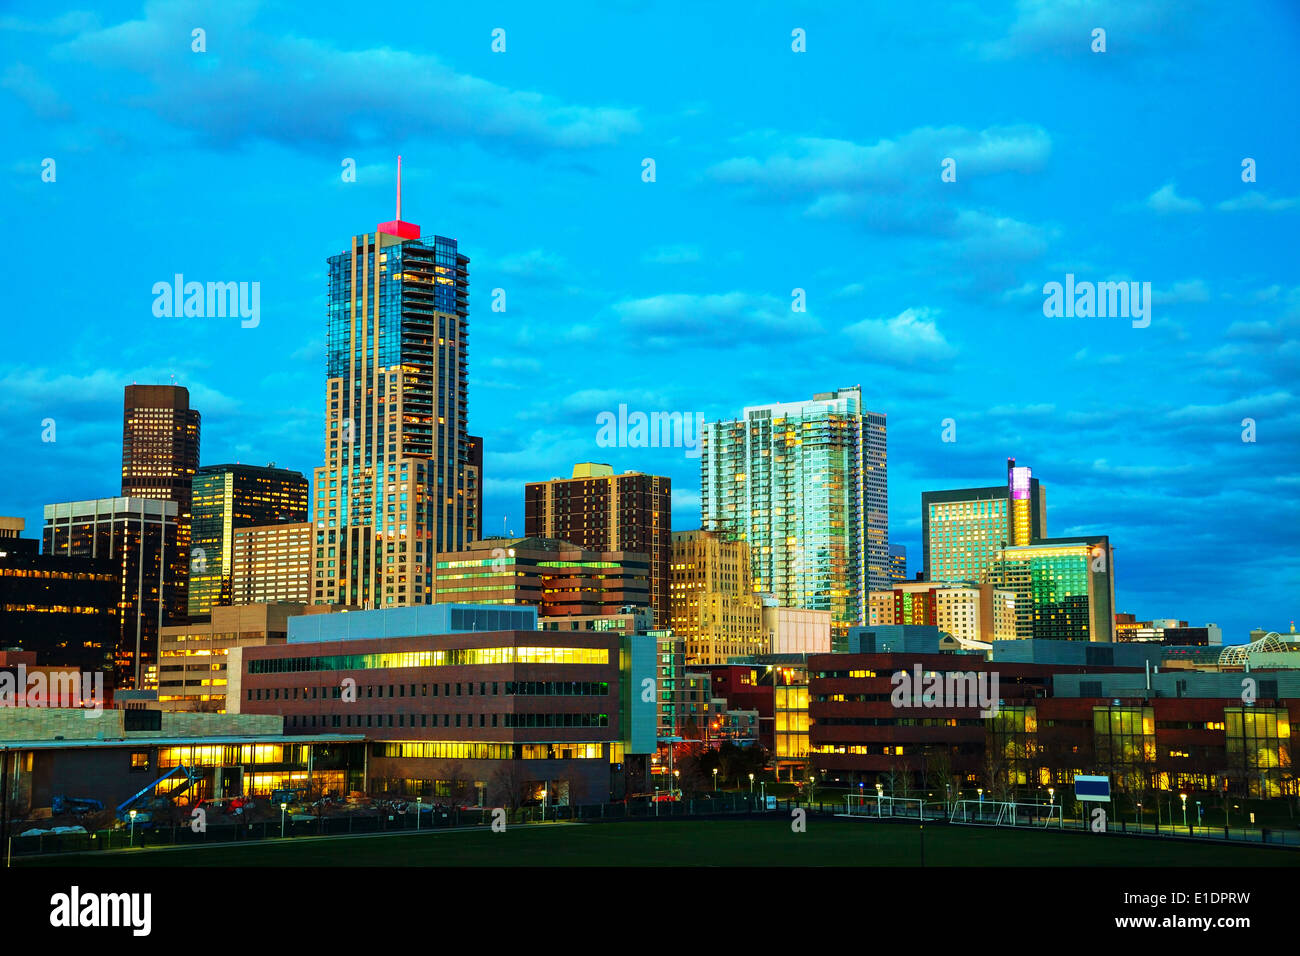 Downtown Denver, Colorado at the night time - Stock Image